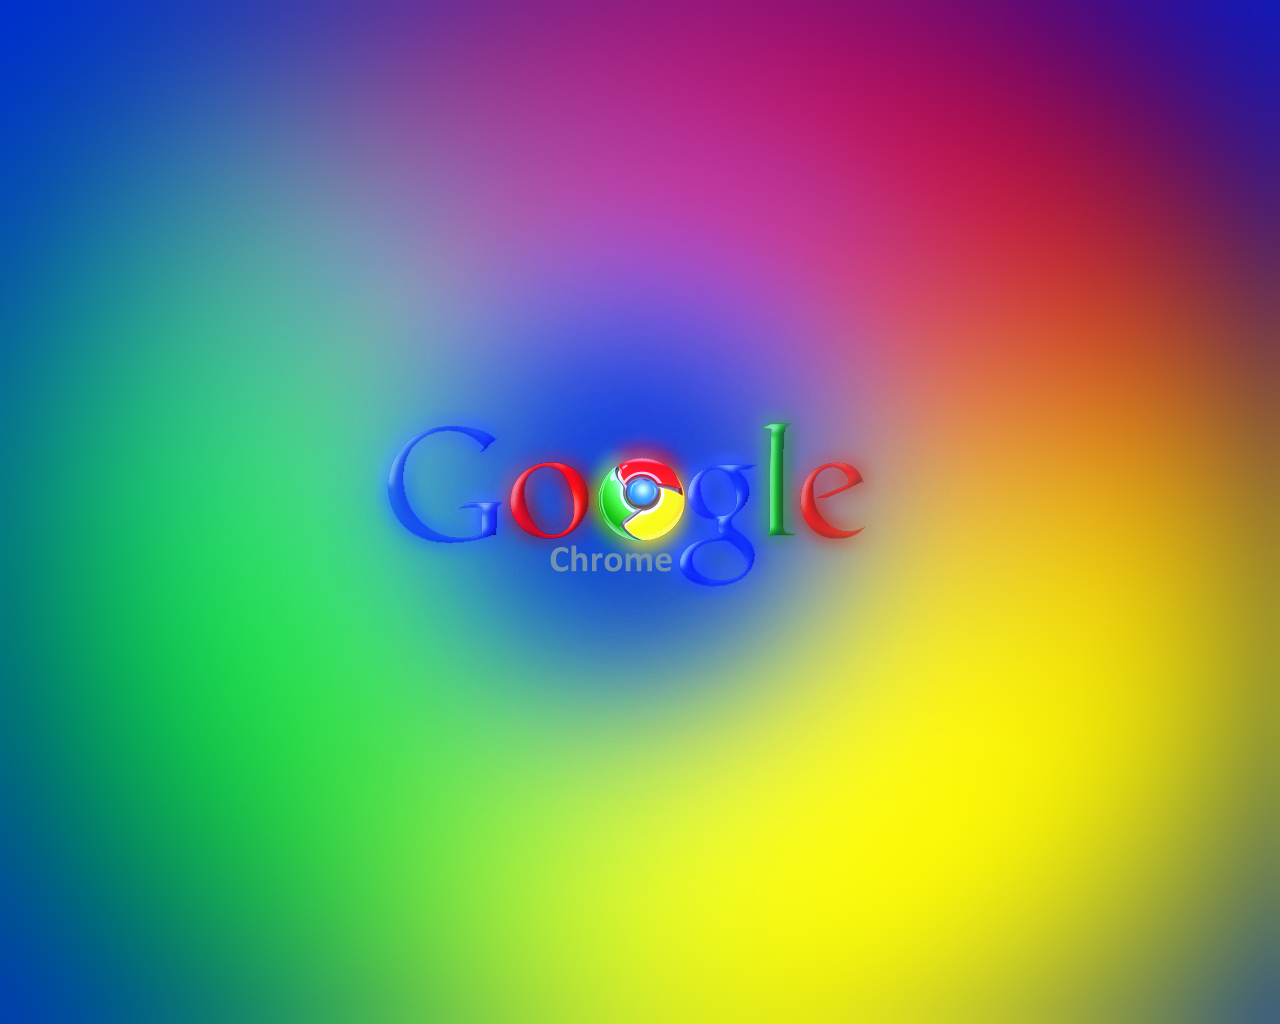 Google chrome themes gallery 2012 free download - Wallpaper Google Themes Free Download Google Chrome Wallpapers Free